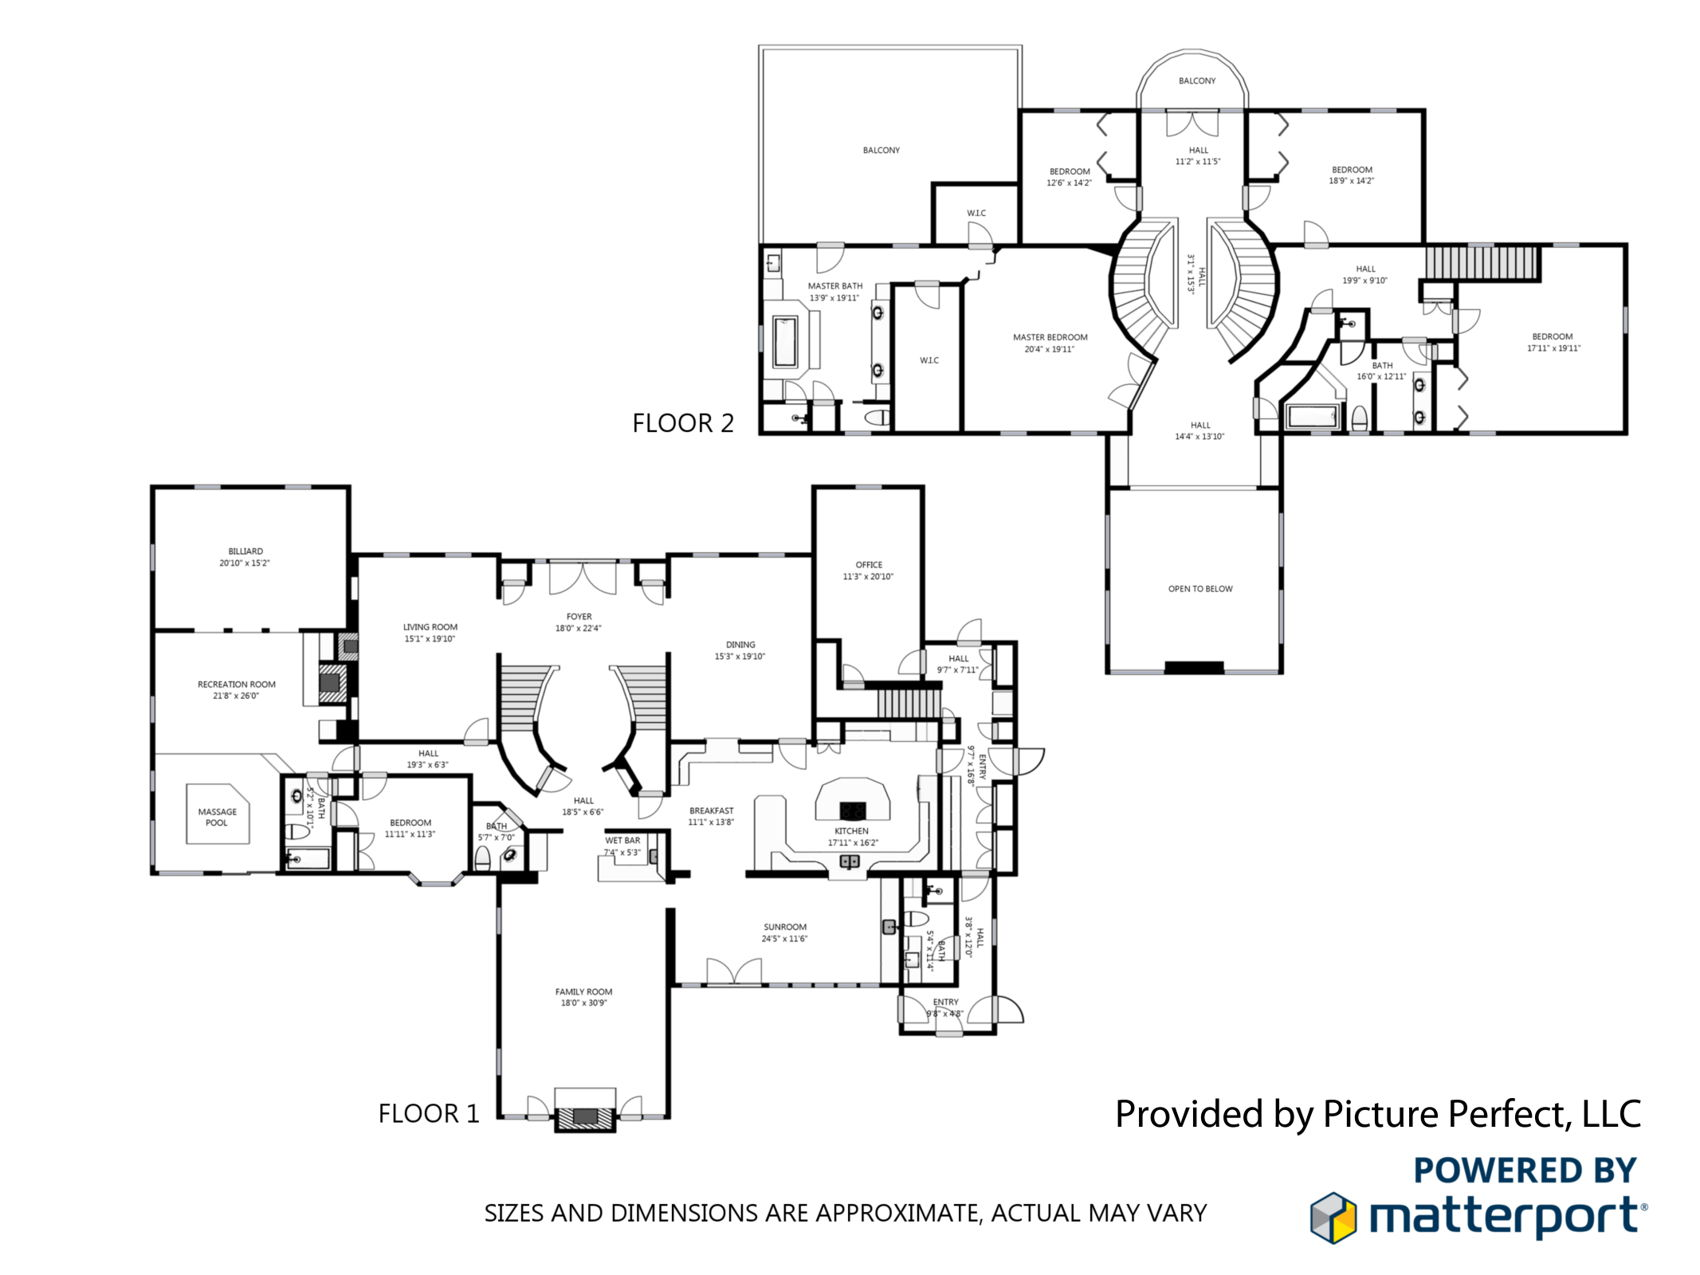 7607 Irongate Lane Floorplan Provided by Picture Perfect, LLC.resize_1700x.jpg